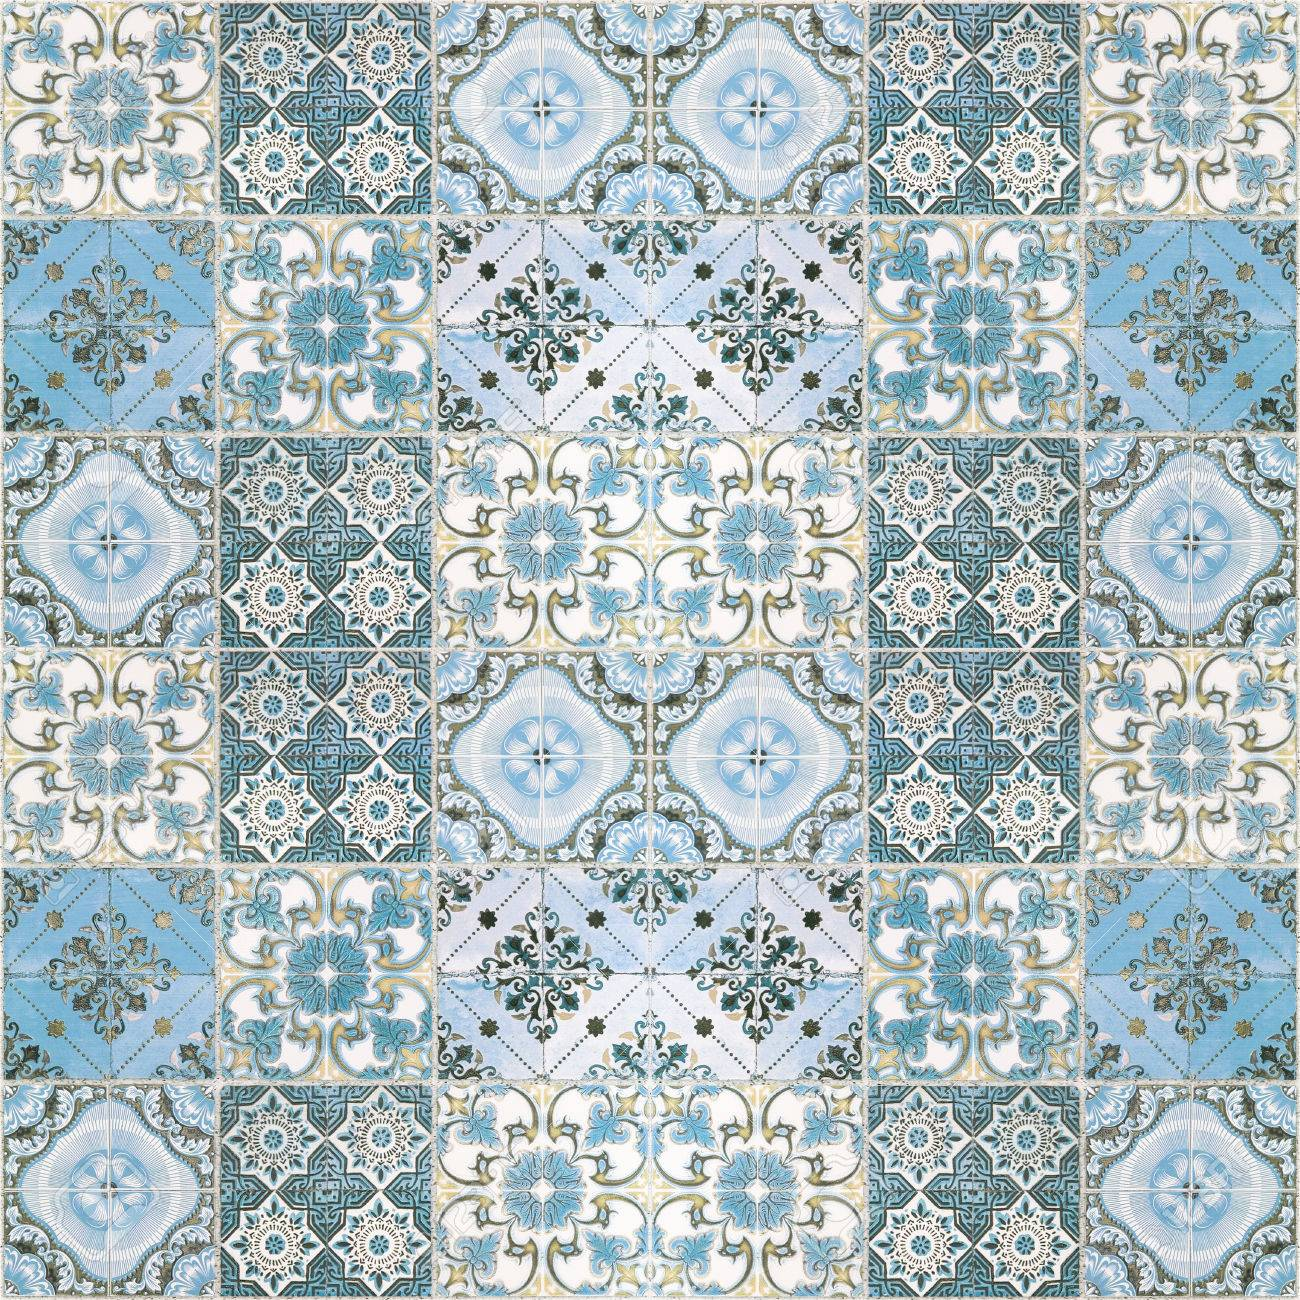 Beautiful Old Wall Ceramic Tiles Patterns Handcraft From Thailand ...